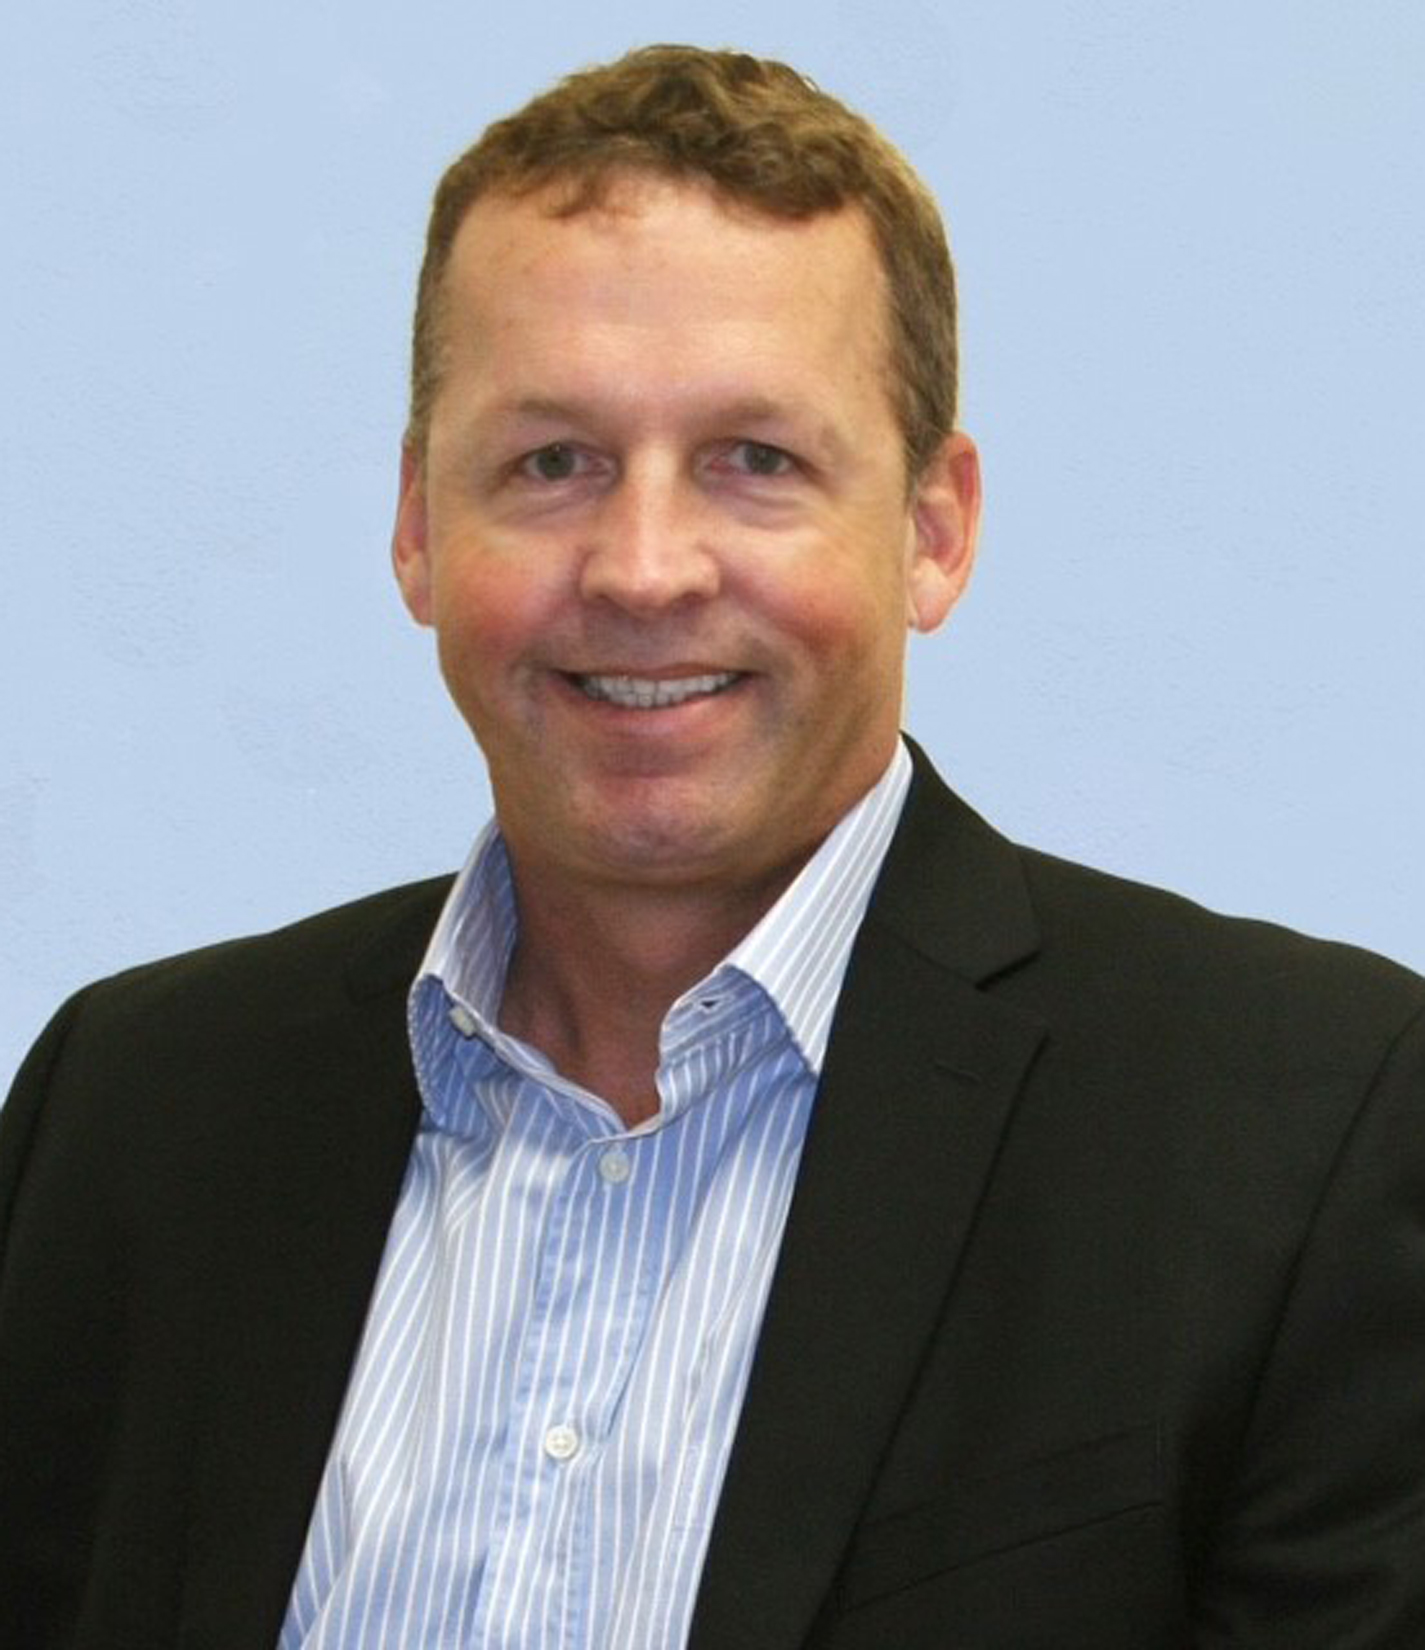 Harry Beisswenger, CEO